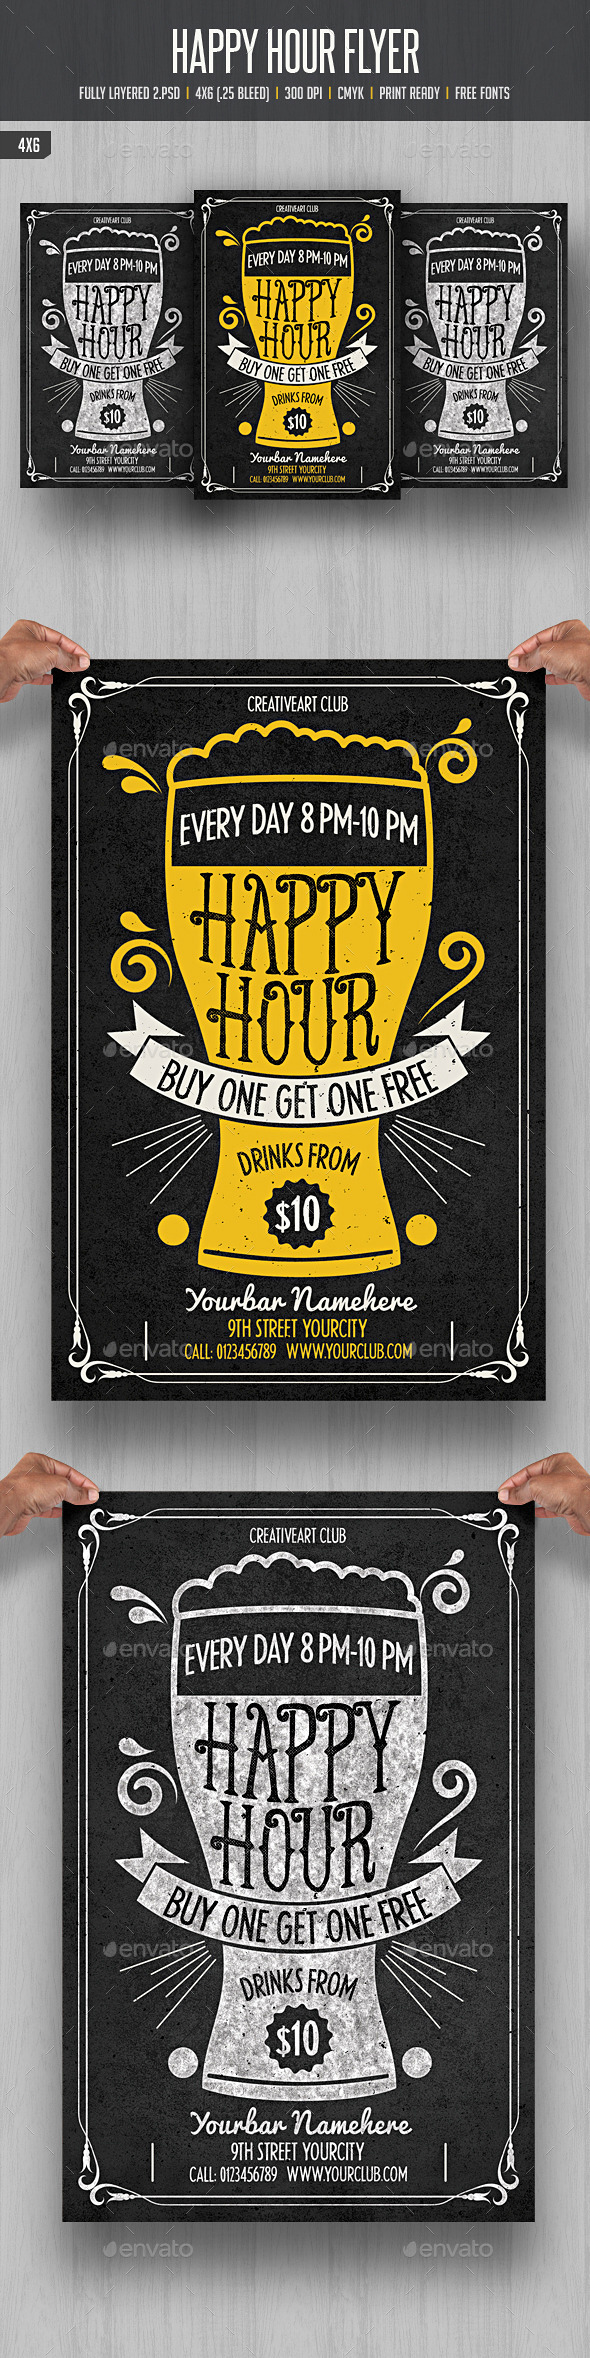 GraphicRiver Happy Hour Flyer 3 11892199